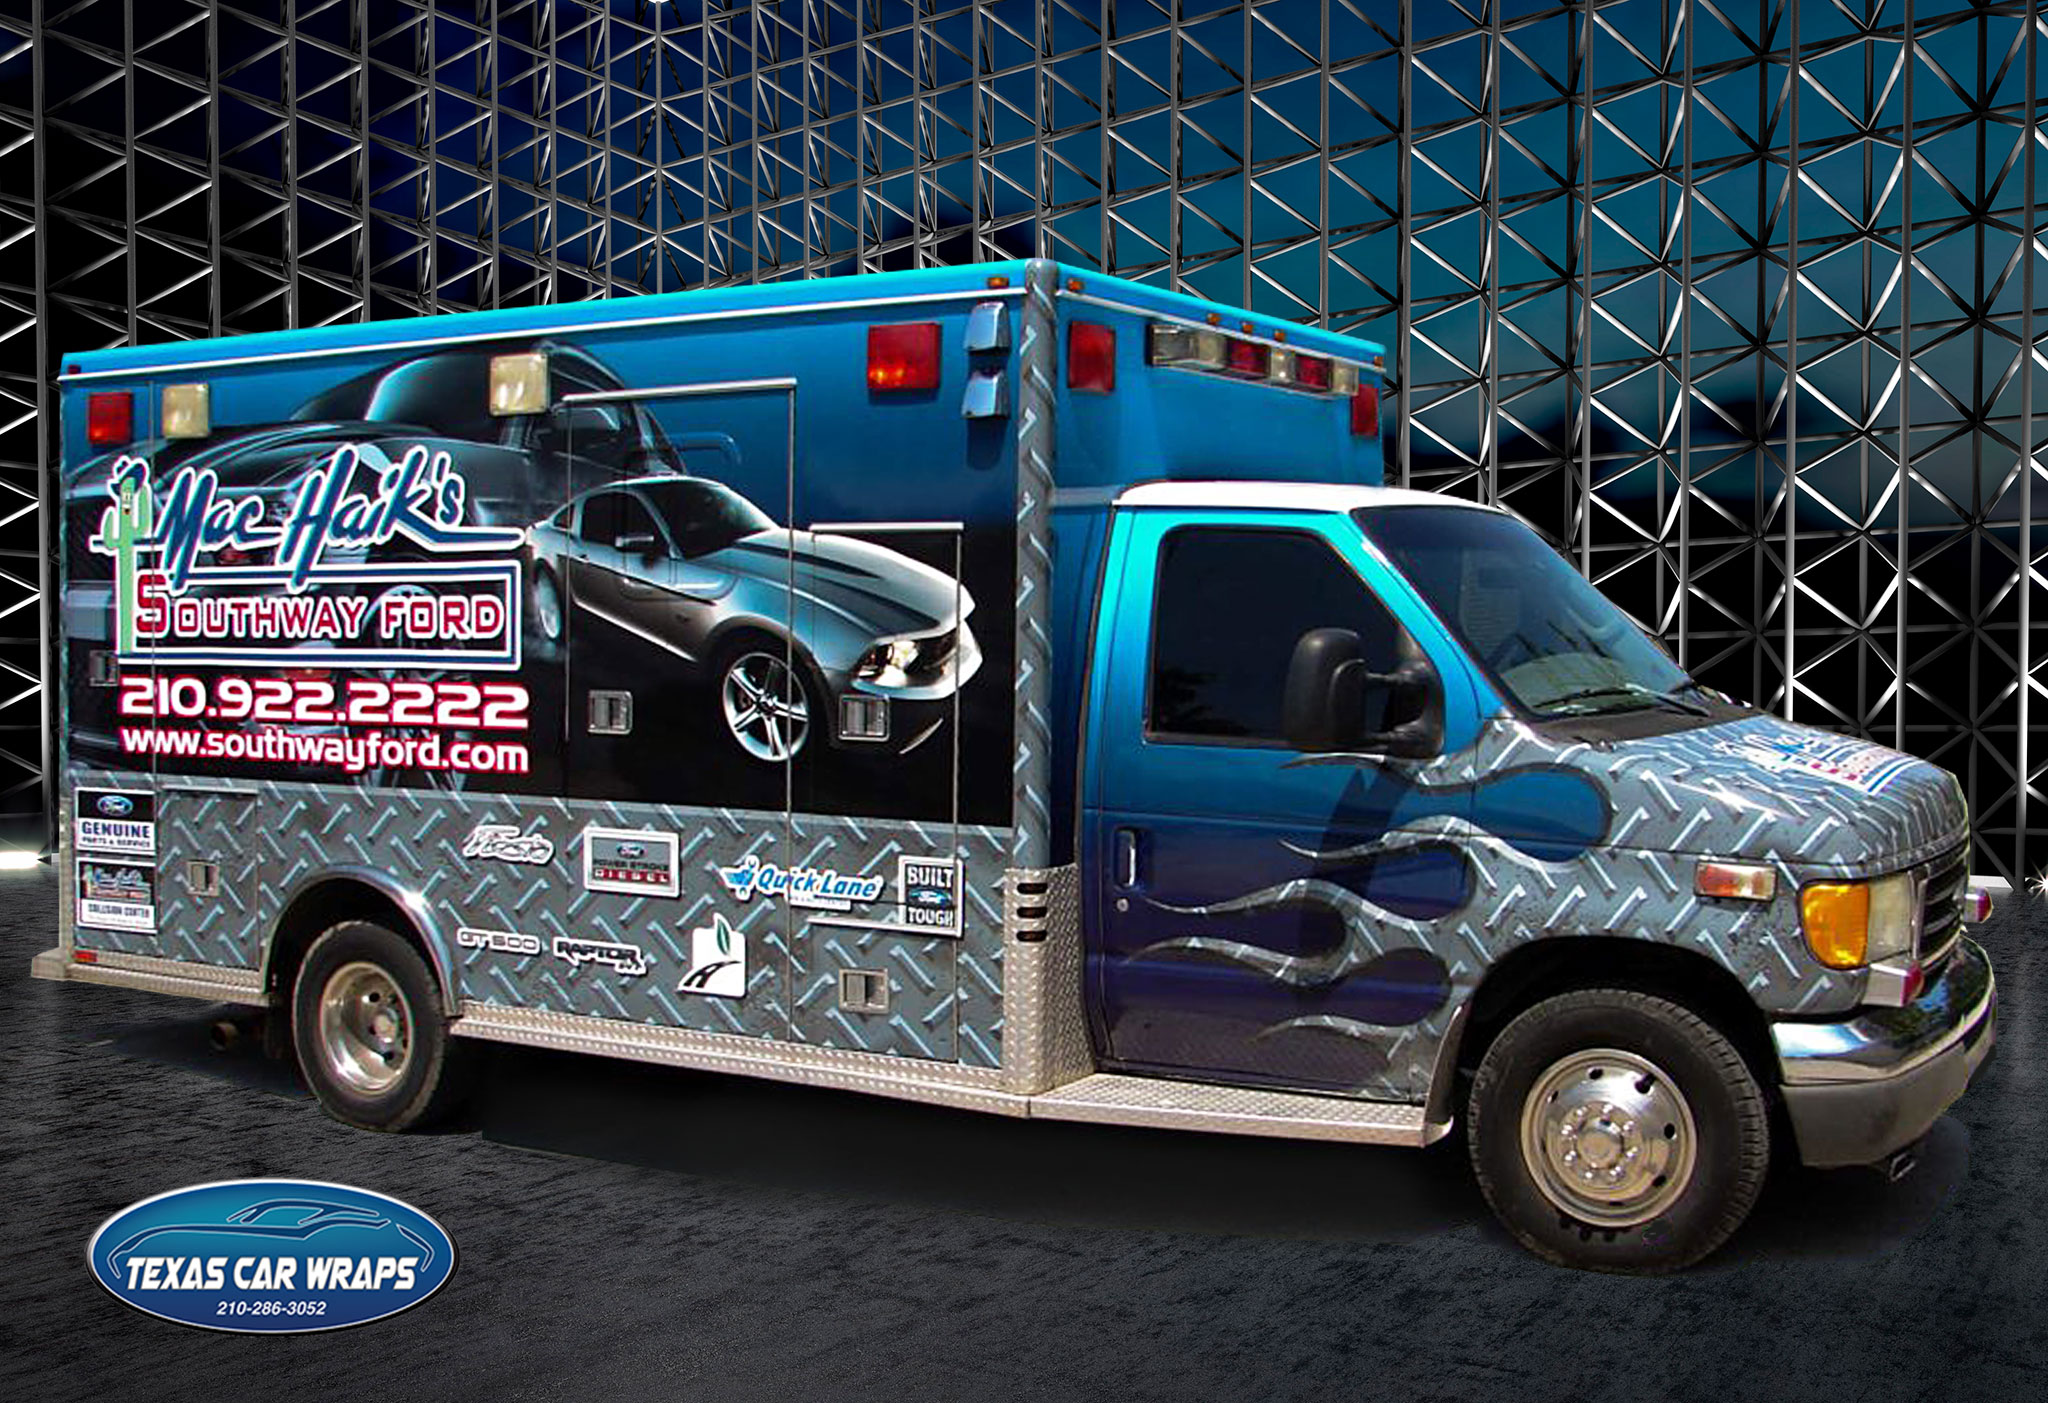 Commercial Wraps Austin TX | Ambulance Wrap Austin TX | Truck Wrap Austin TX | Vehicle Wrap Austin TX | Dealership Graphics Austin | Dealership Signs Austin TX